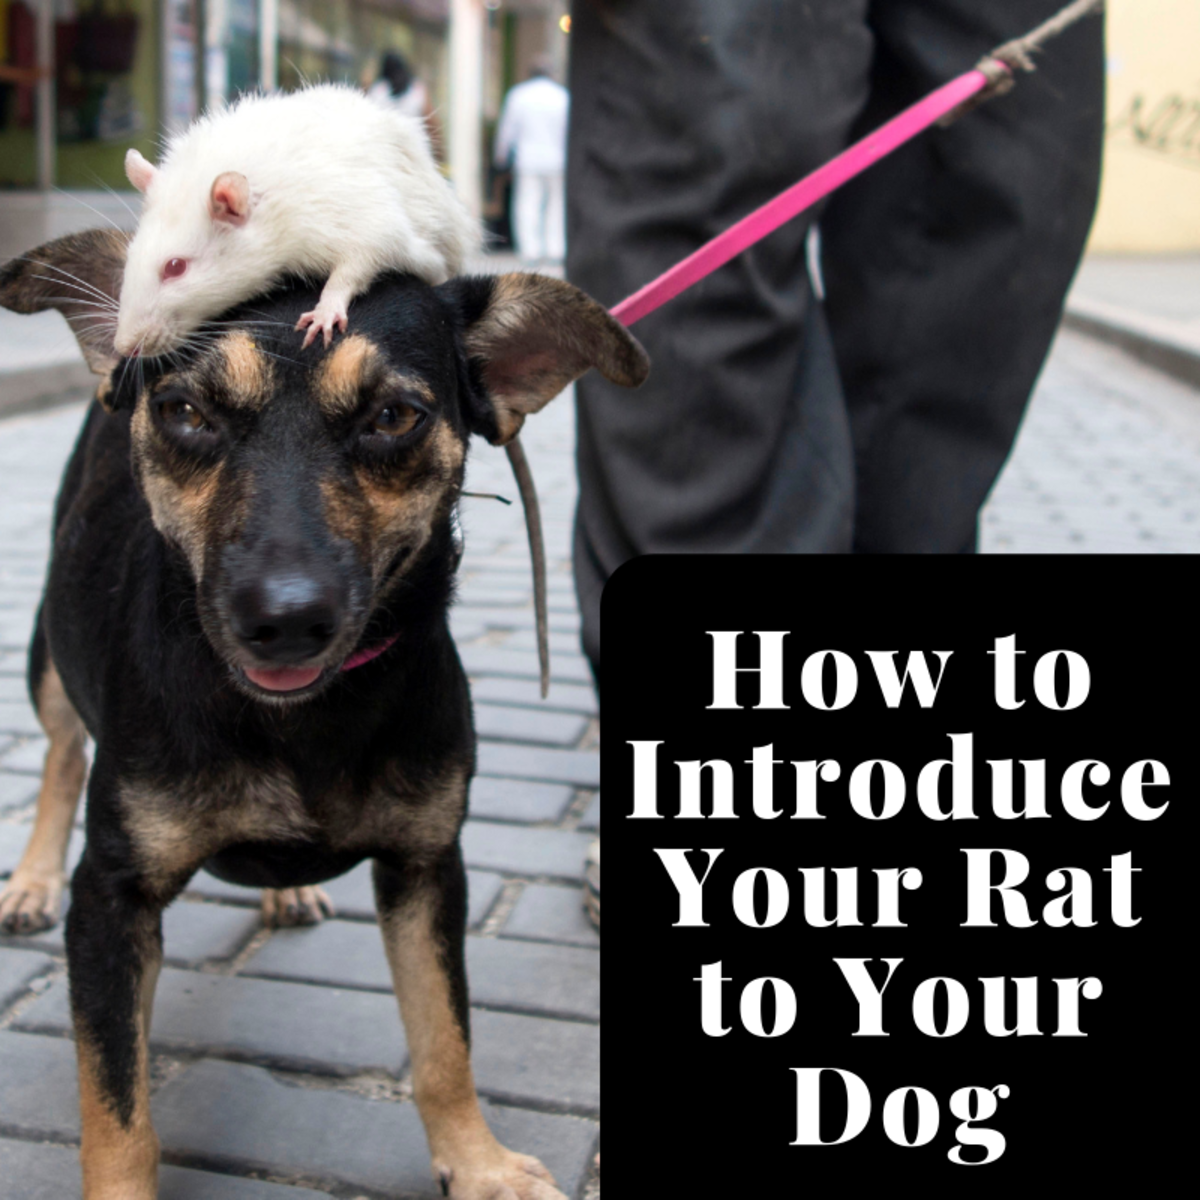 How to Protect Your Pet Rat From Your Dog